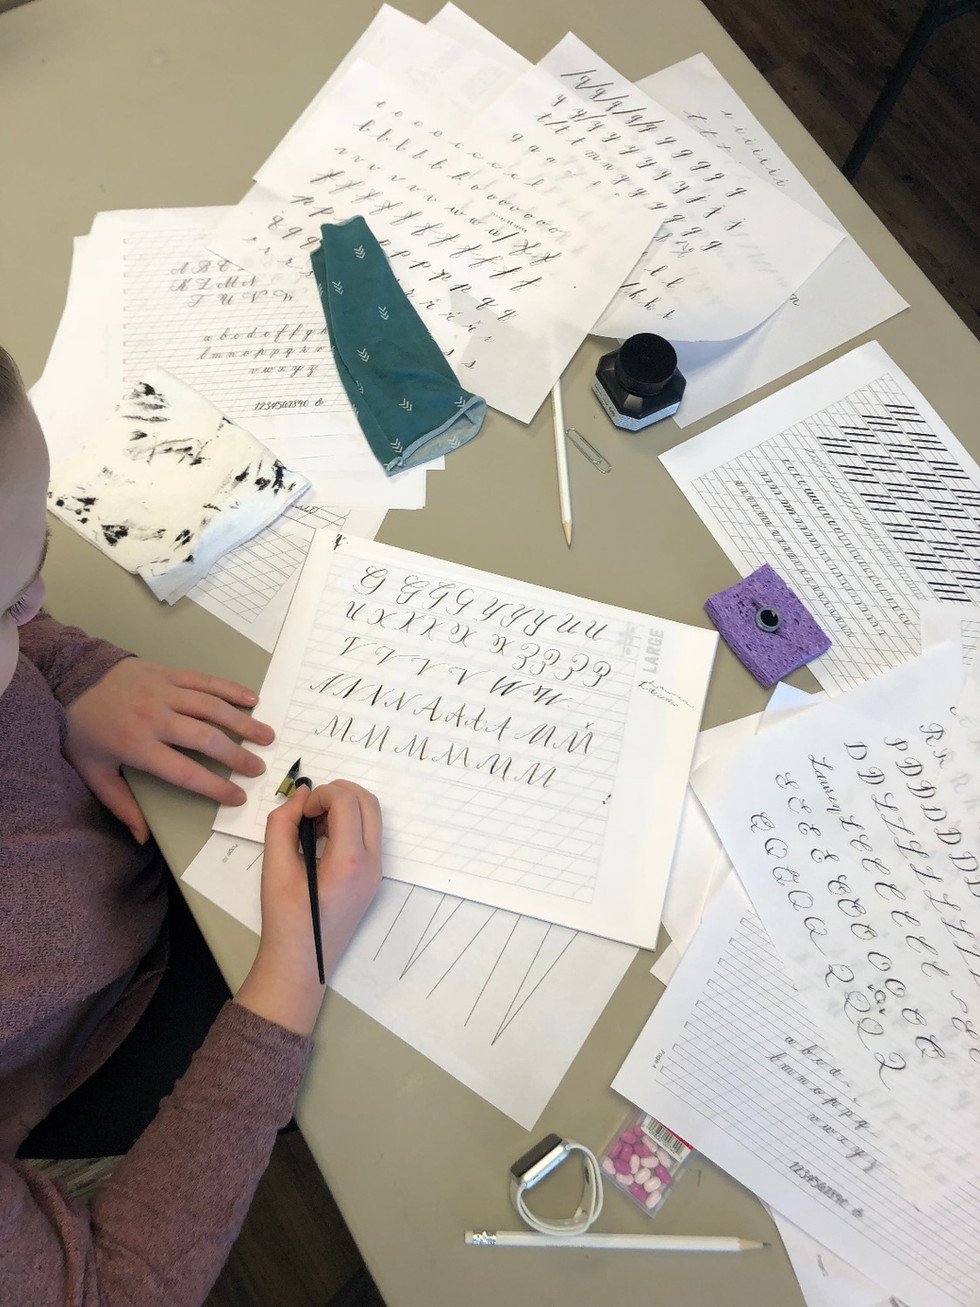 Modern Calligraphy Classes In Nashville, Tennessee